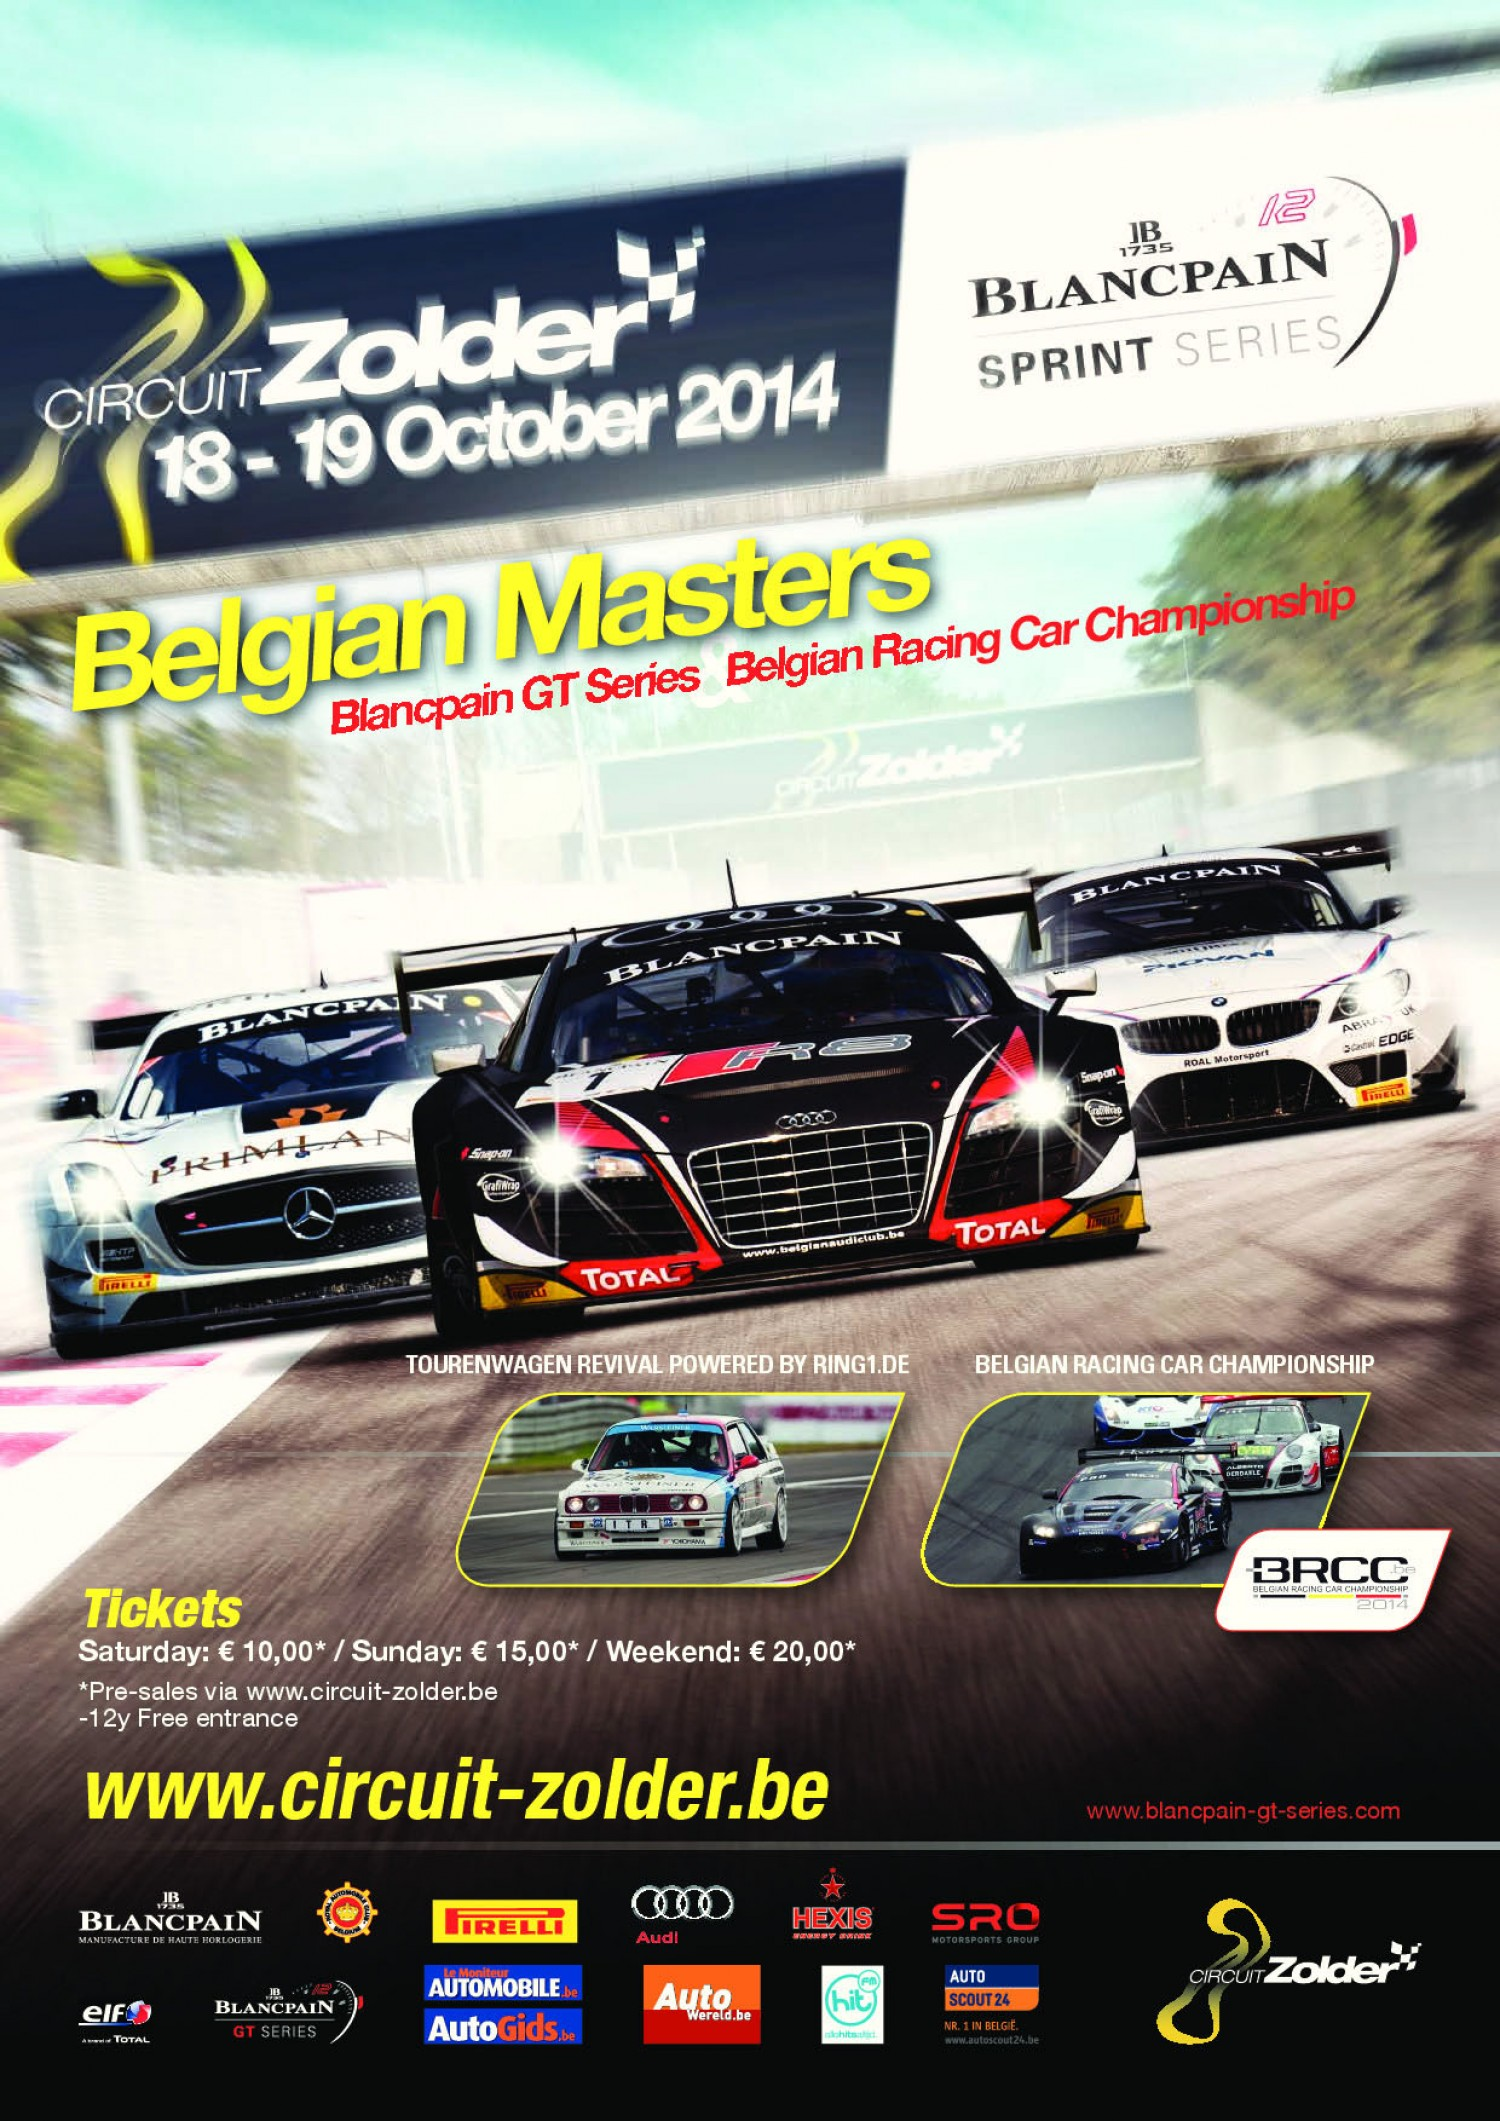 Tickets sales for the Blancpain Sprint Series at Zolder are on line!